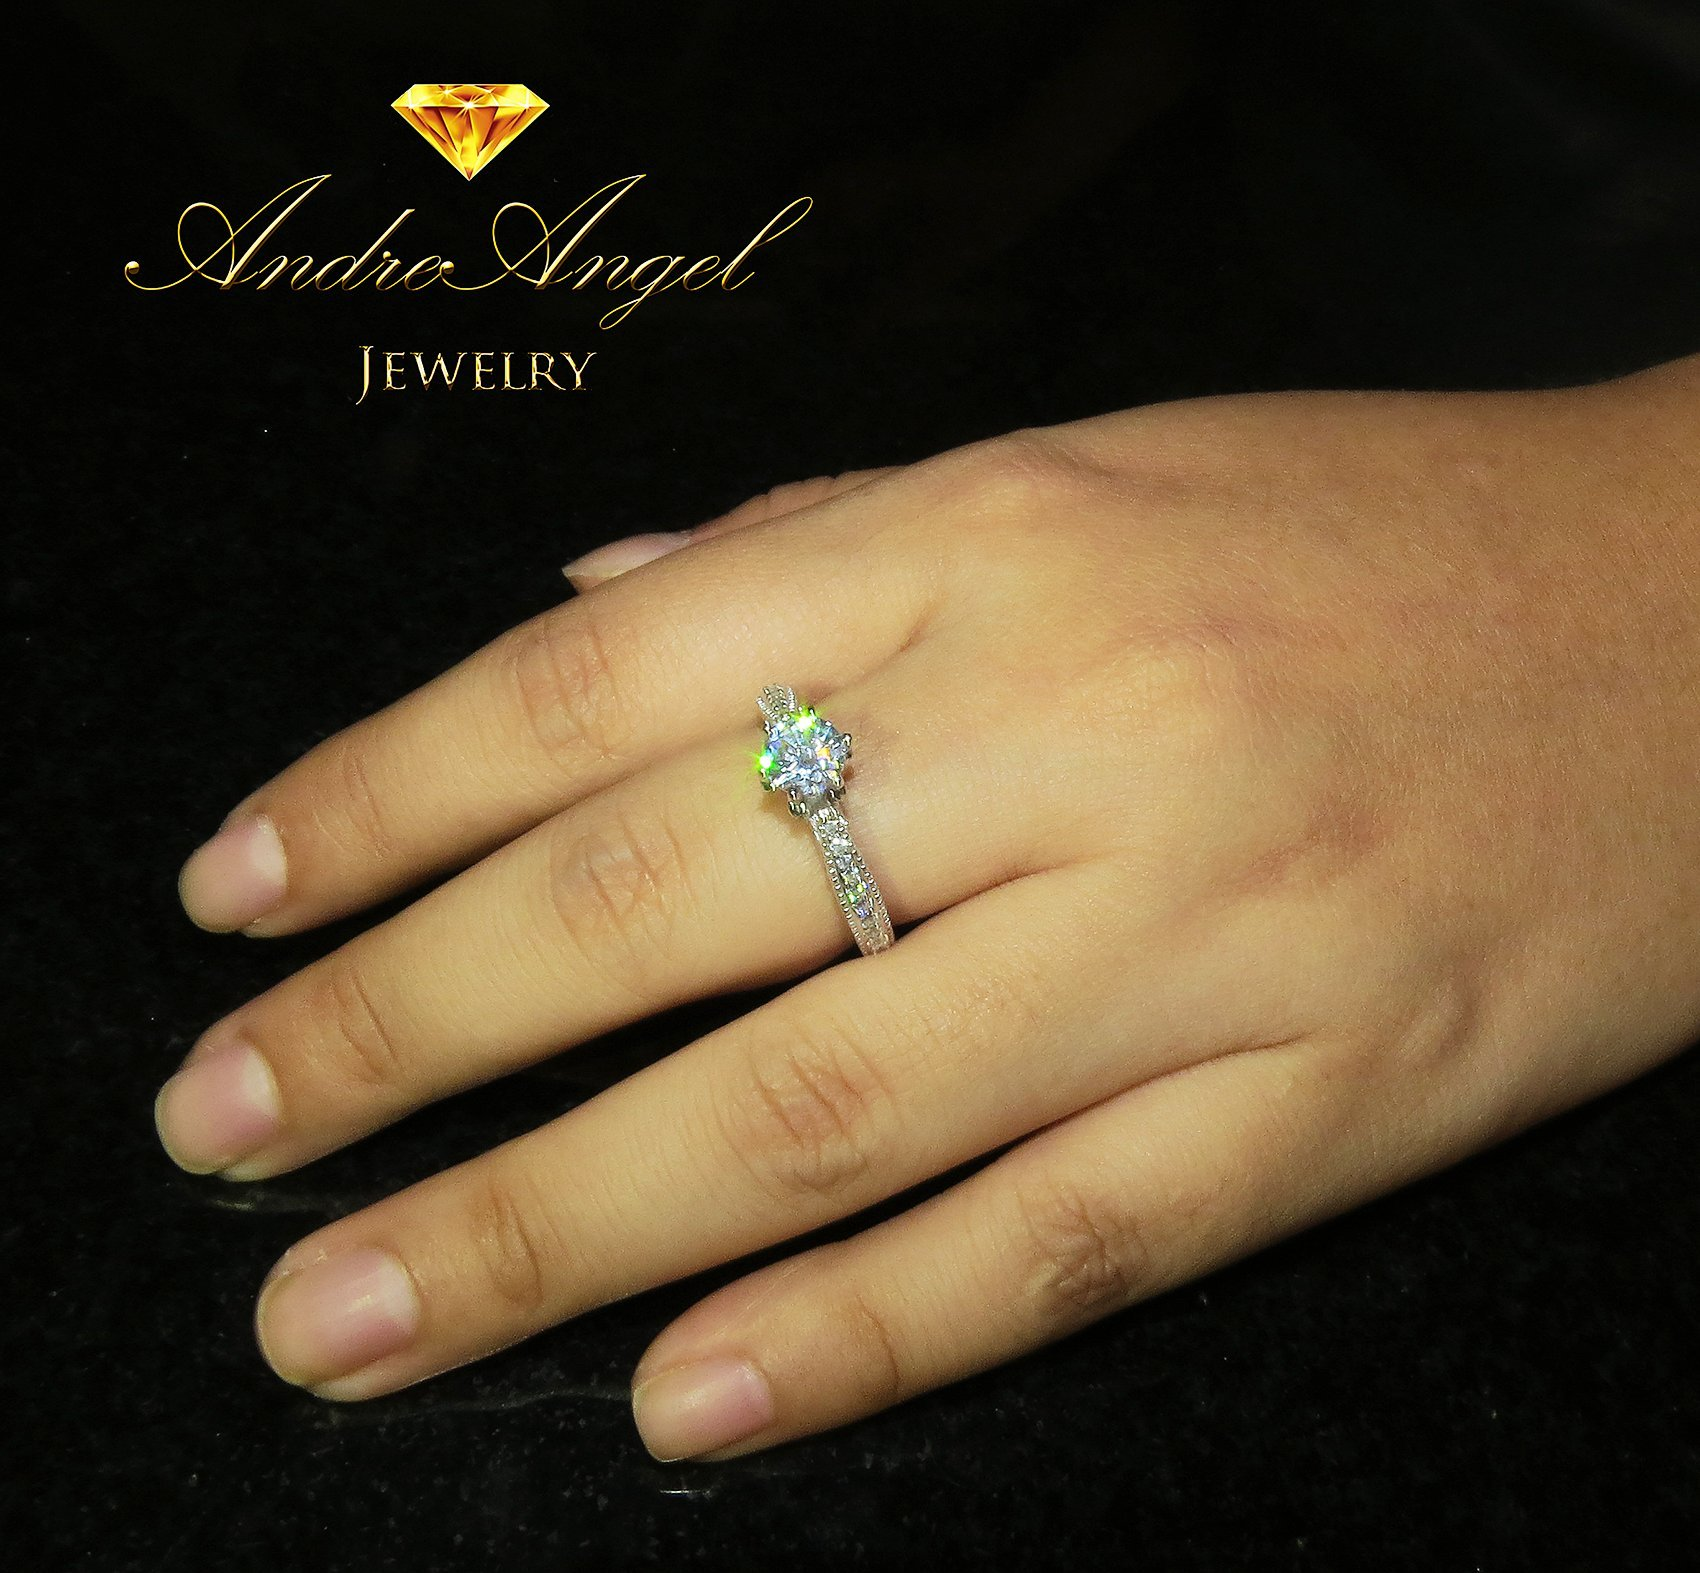 AndreAngel Women Ring White Gold 18K Princess Cut/Lab Diamond 6 mm Carat Cubic Zirconia AAA+/Bridal Birthday Dating Gift Anniversary Promise Engagement or Wedding Mother's Day (7) by AndreAngel (Image #4)